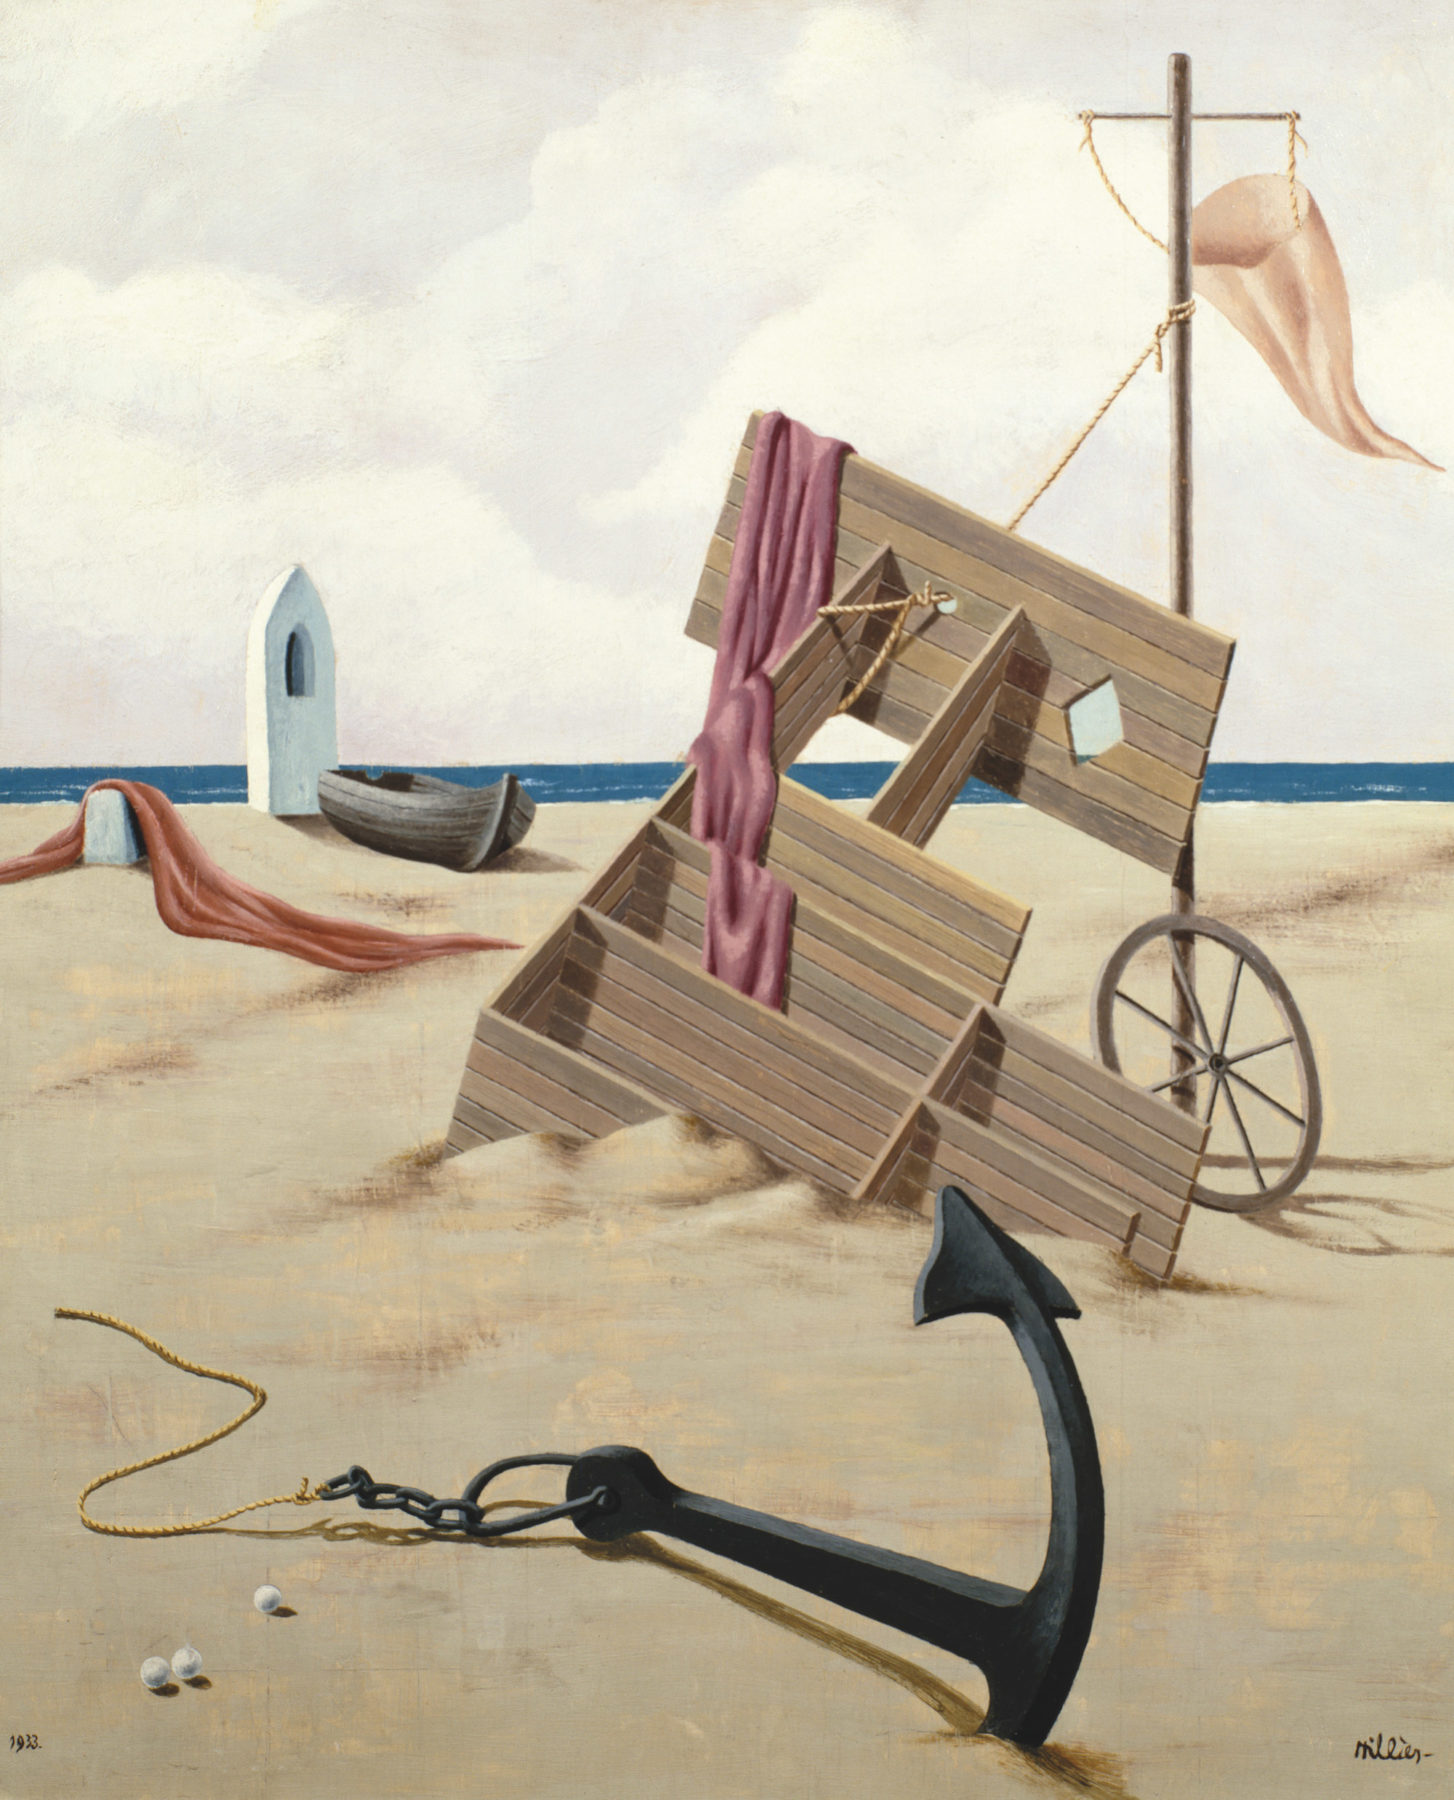 A sandy beach is shown against a bright but cloudy sky. Between the sand and the sky is a thin strip of deep blue sea. A capsized piece of furniture lies on the sand. A wheel leans against its side and there is a pink cloth draped over. Behind is another piece of pink draped cloth, a boat and a white beach hut. In the foreground there is a large black anchor.